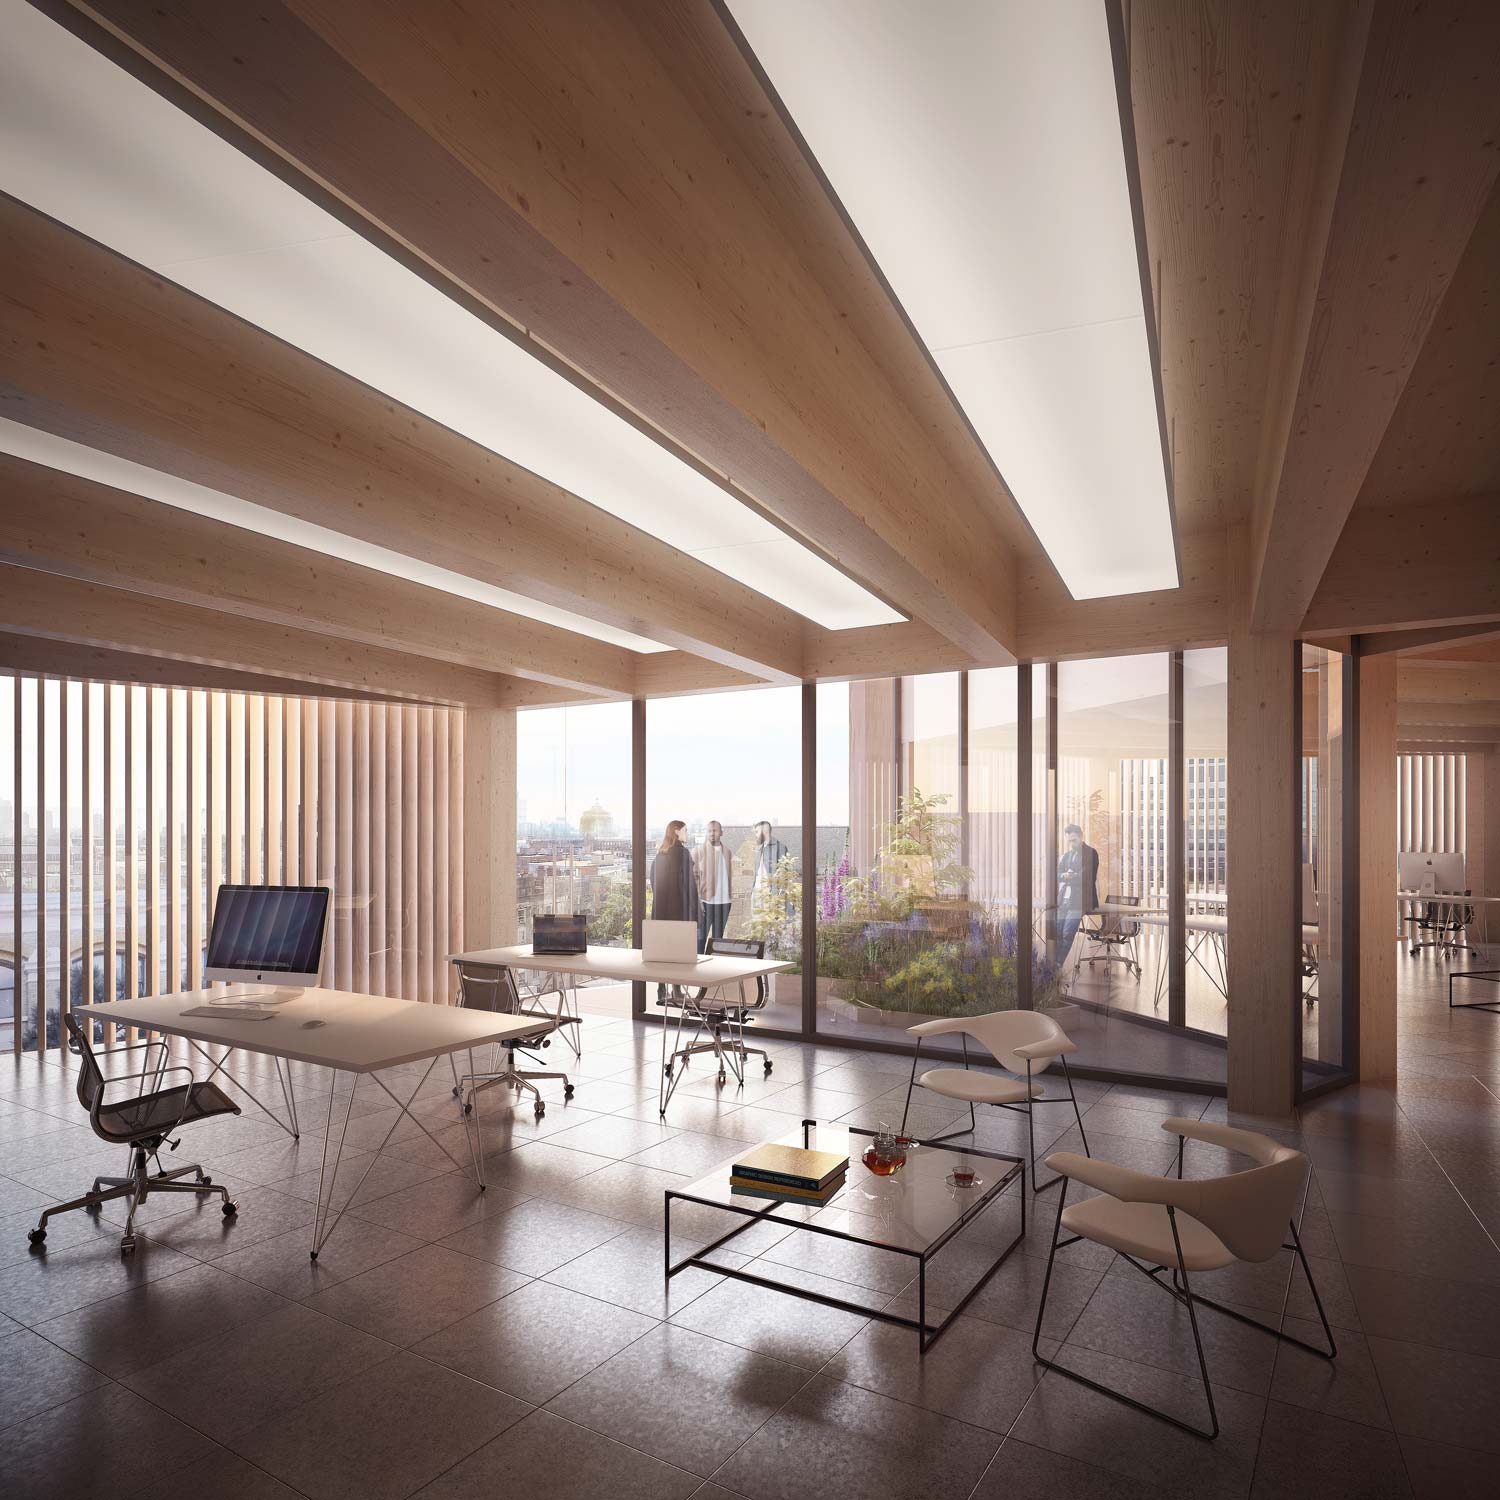 High fidelity design view of development house, an office space in London